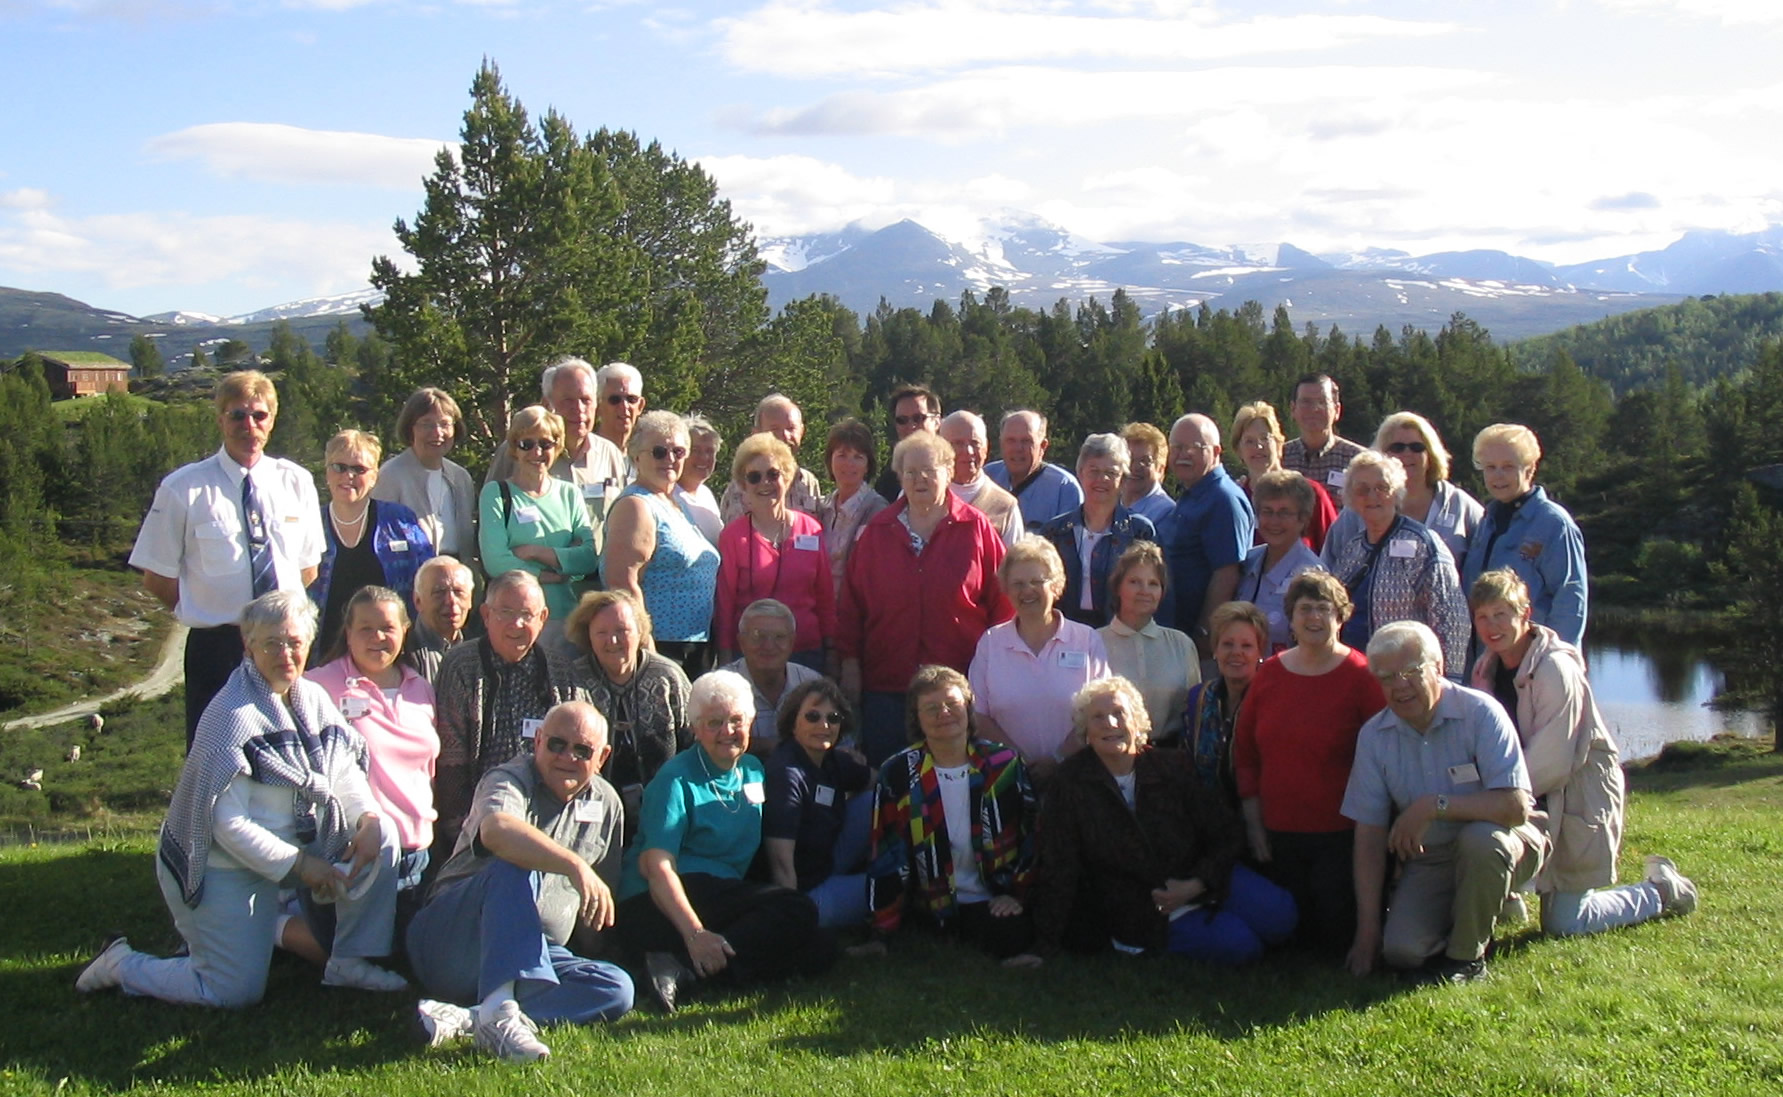 Group photo from Otta, Norway